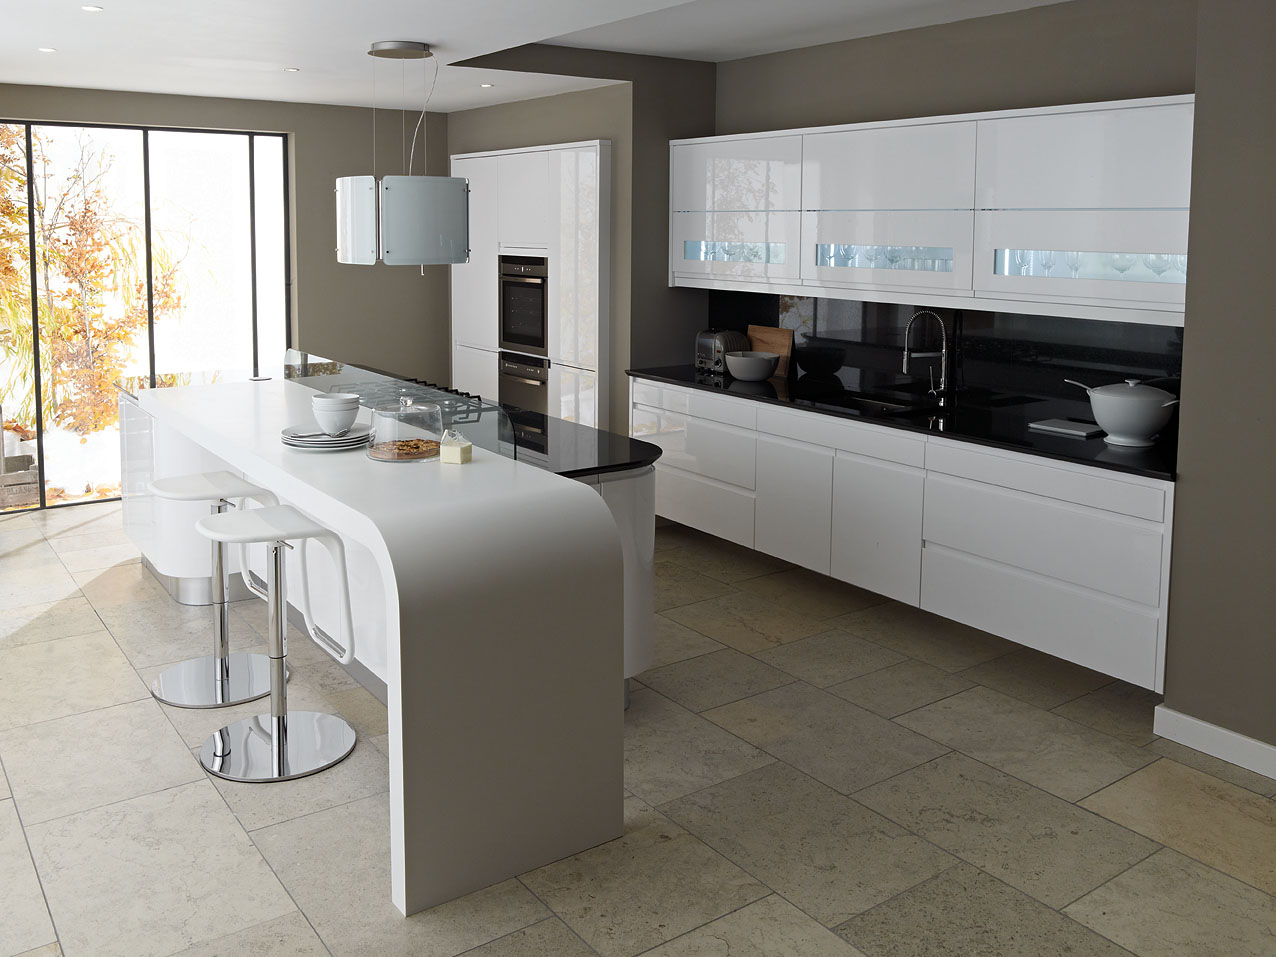 corian countertops corian kitchen countertops corian kitchen countertops